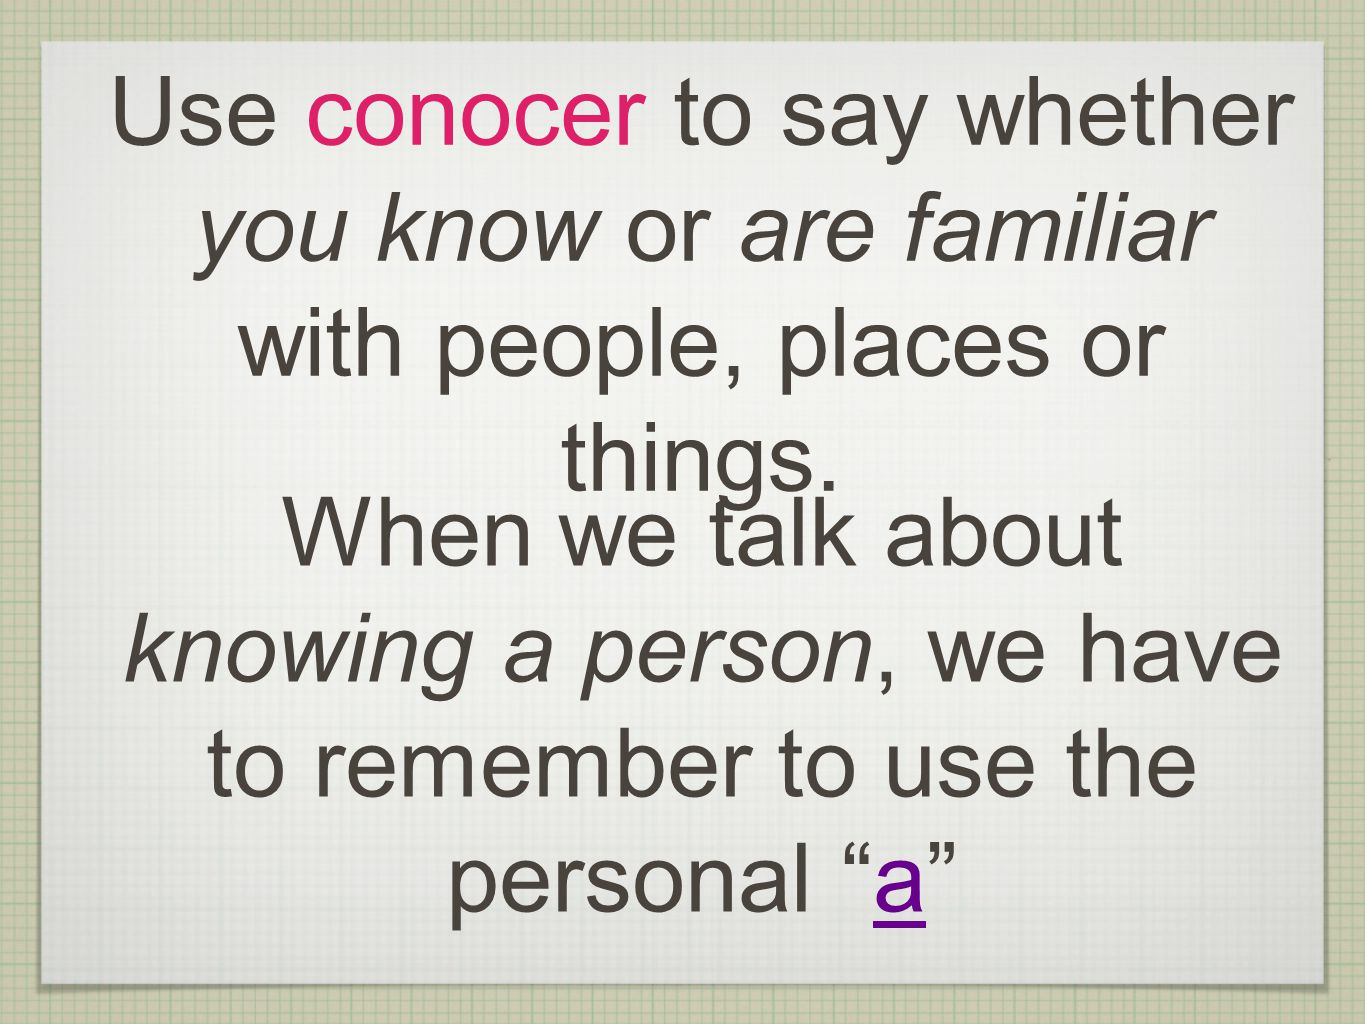 Use conocer to say whether you know or are familiar with people, places or things.